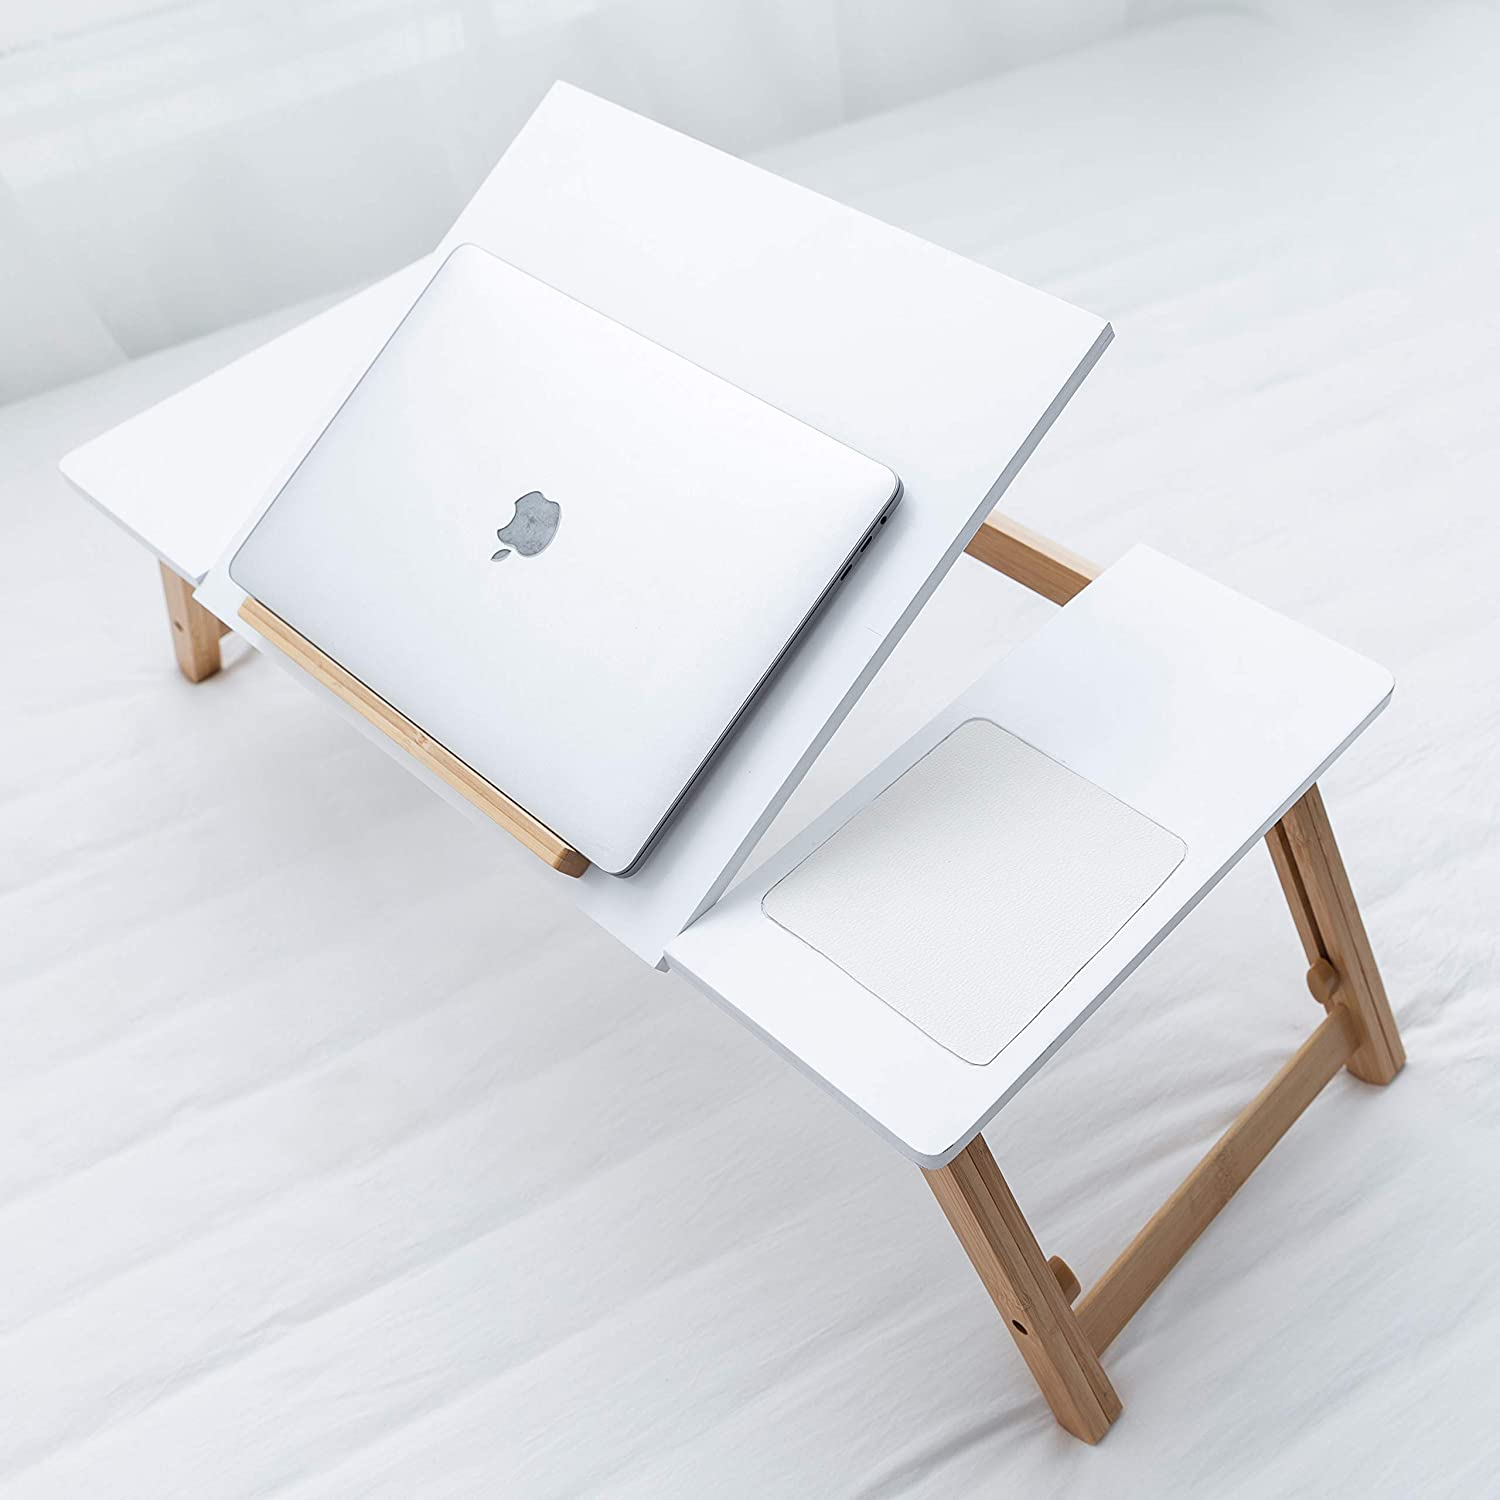 Techup Large Laptop Bed Table Desk for Work , Work from Home Accessories , Laptop Stand Foldable Computer Lap with Legs Bamboo